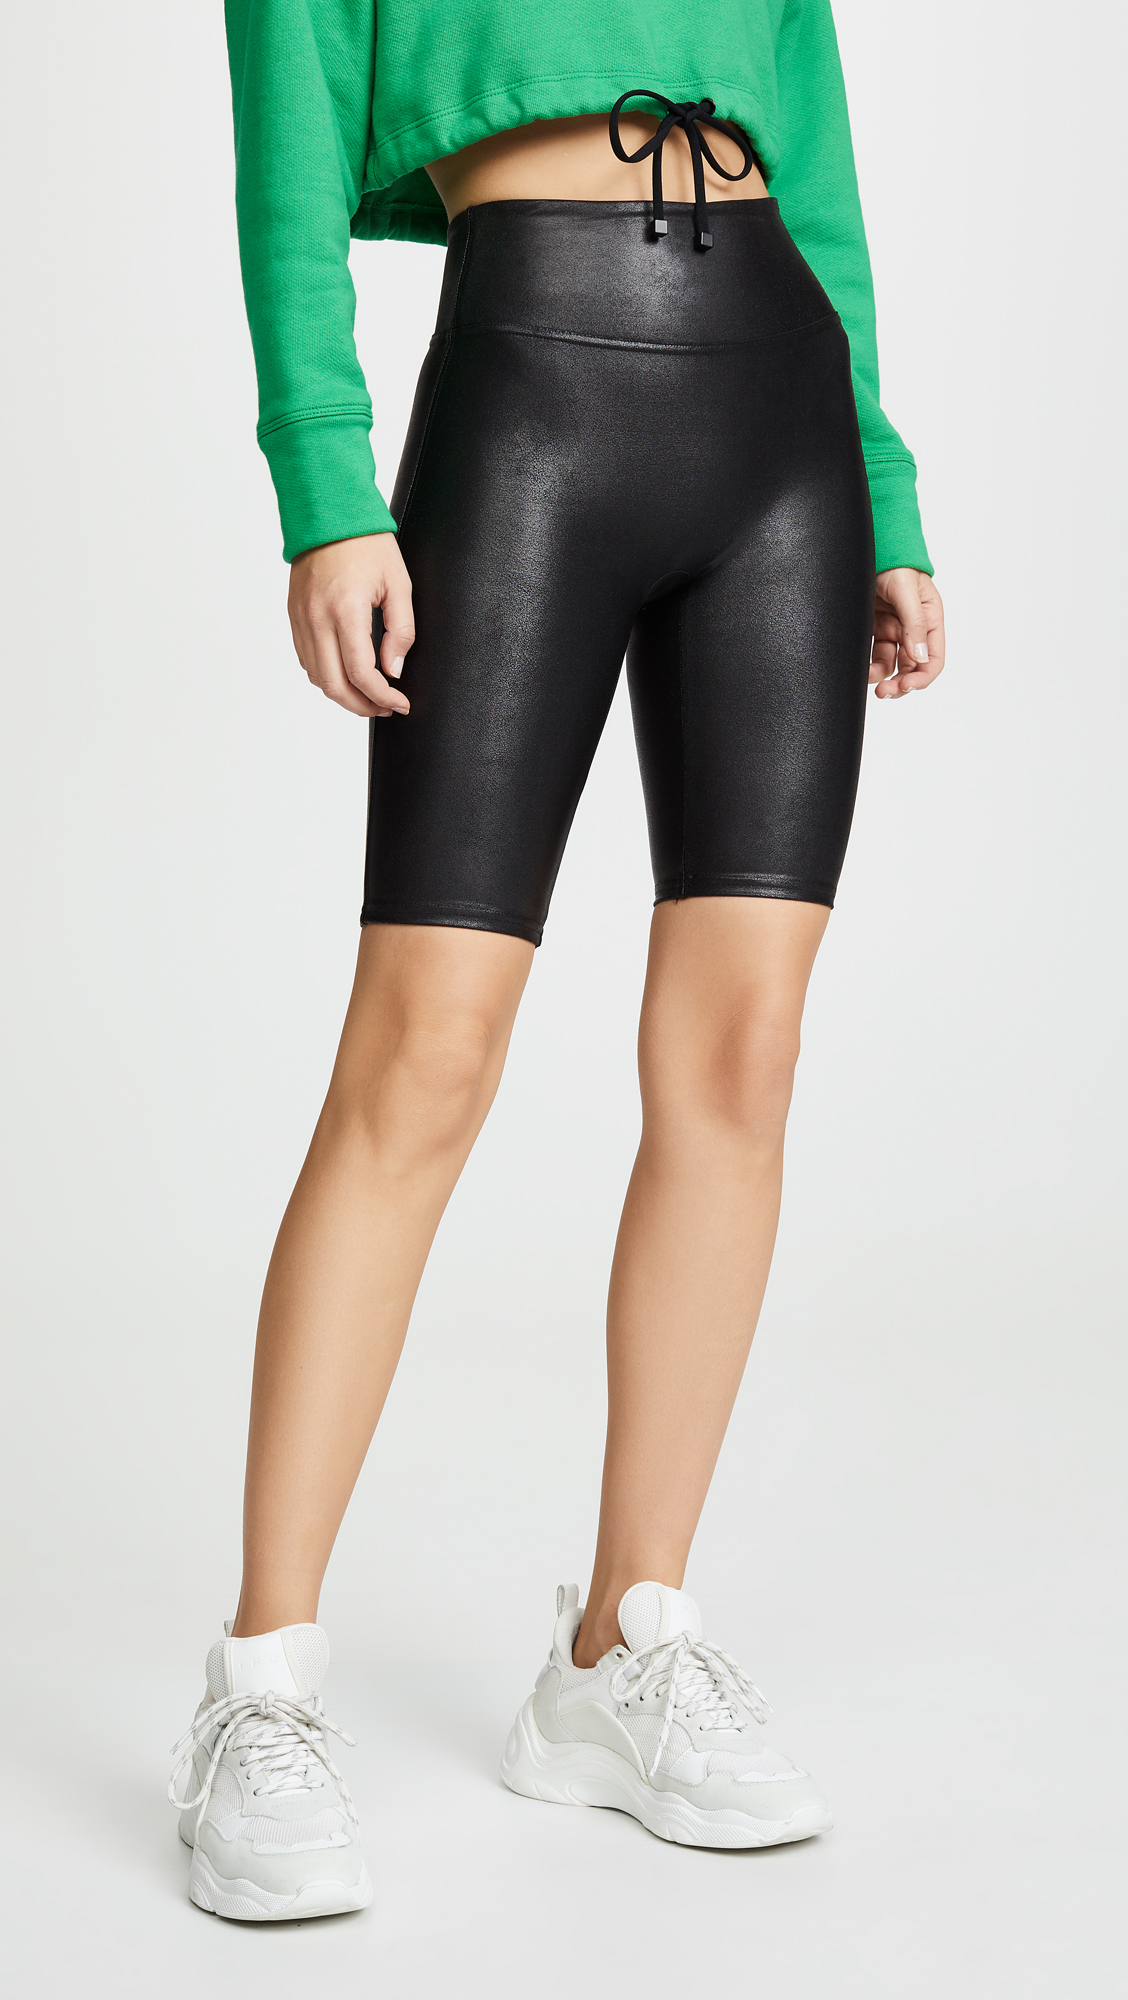 Spanx Faux Leather Bike Shorts  $68